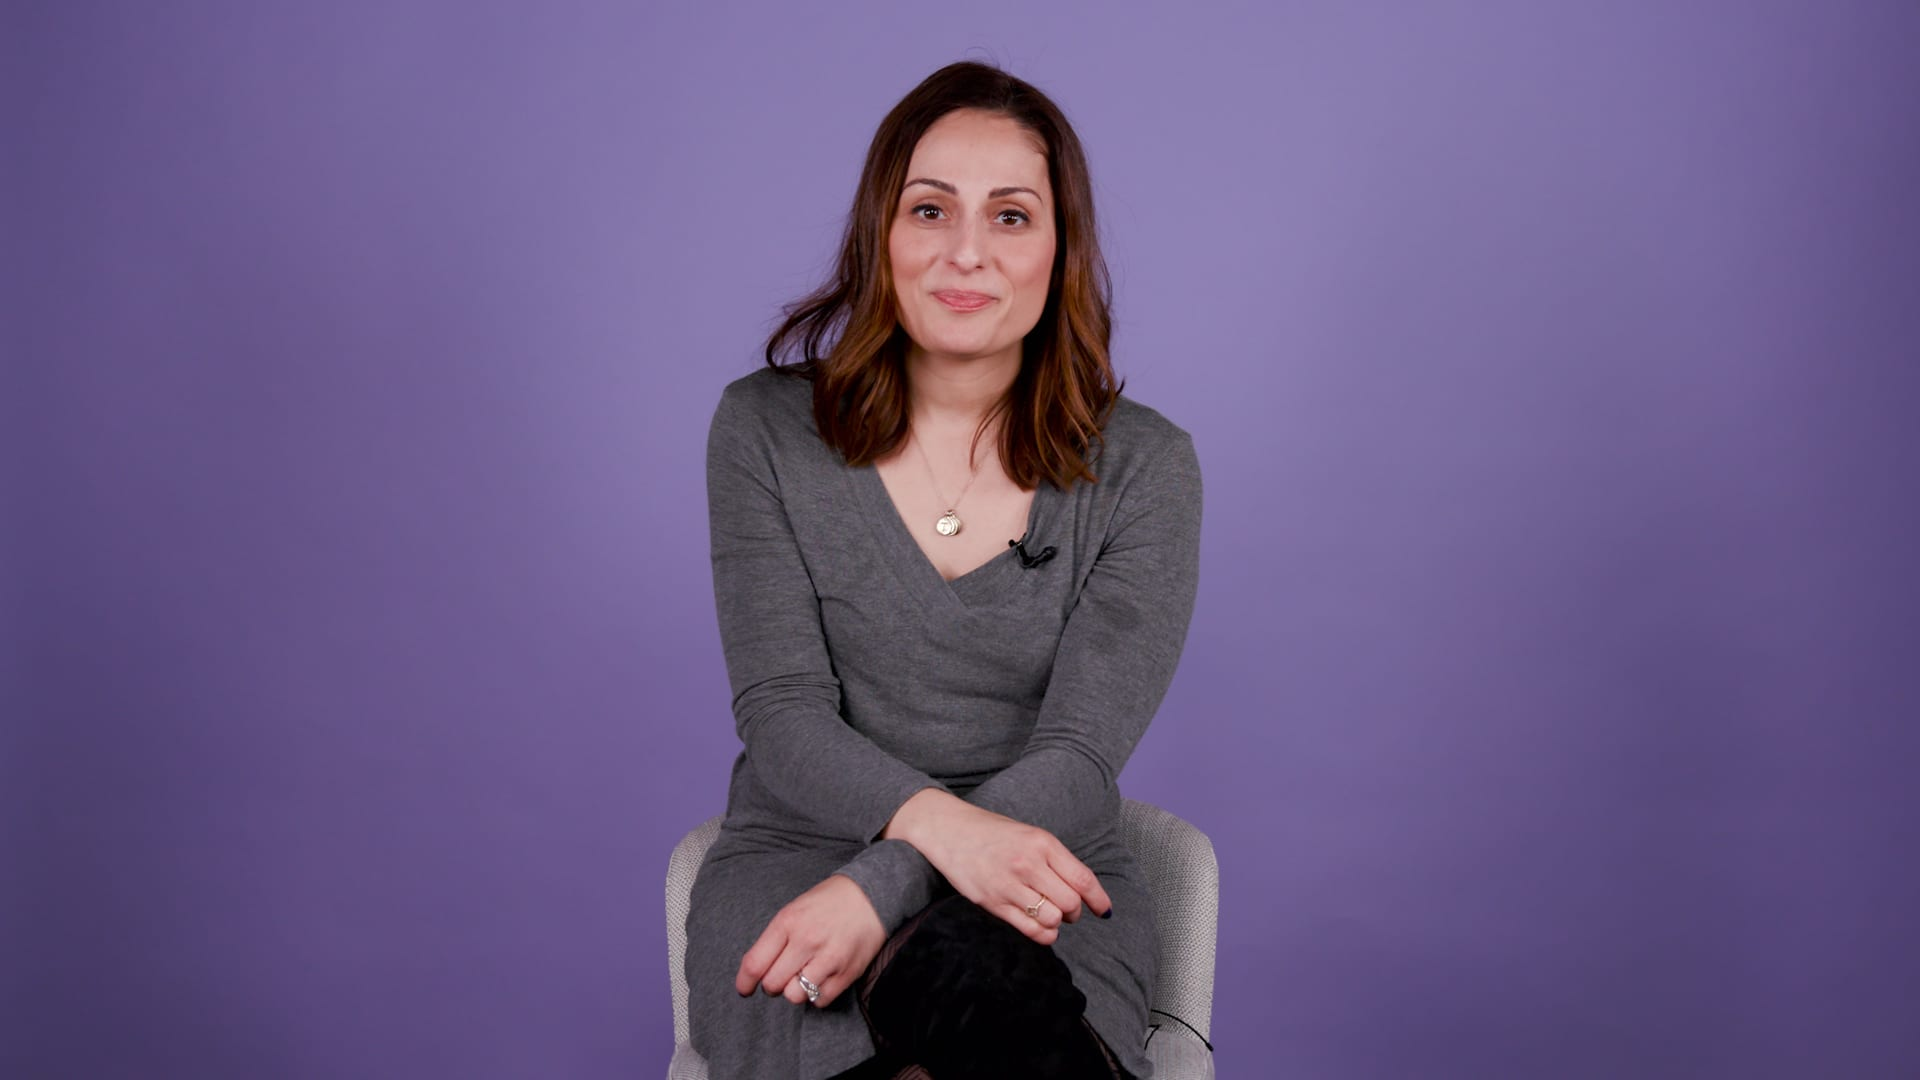 Farnoosh Torabi – the biggest lesson she learned from hosting 1,000 podcast episodes